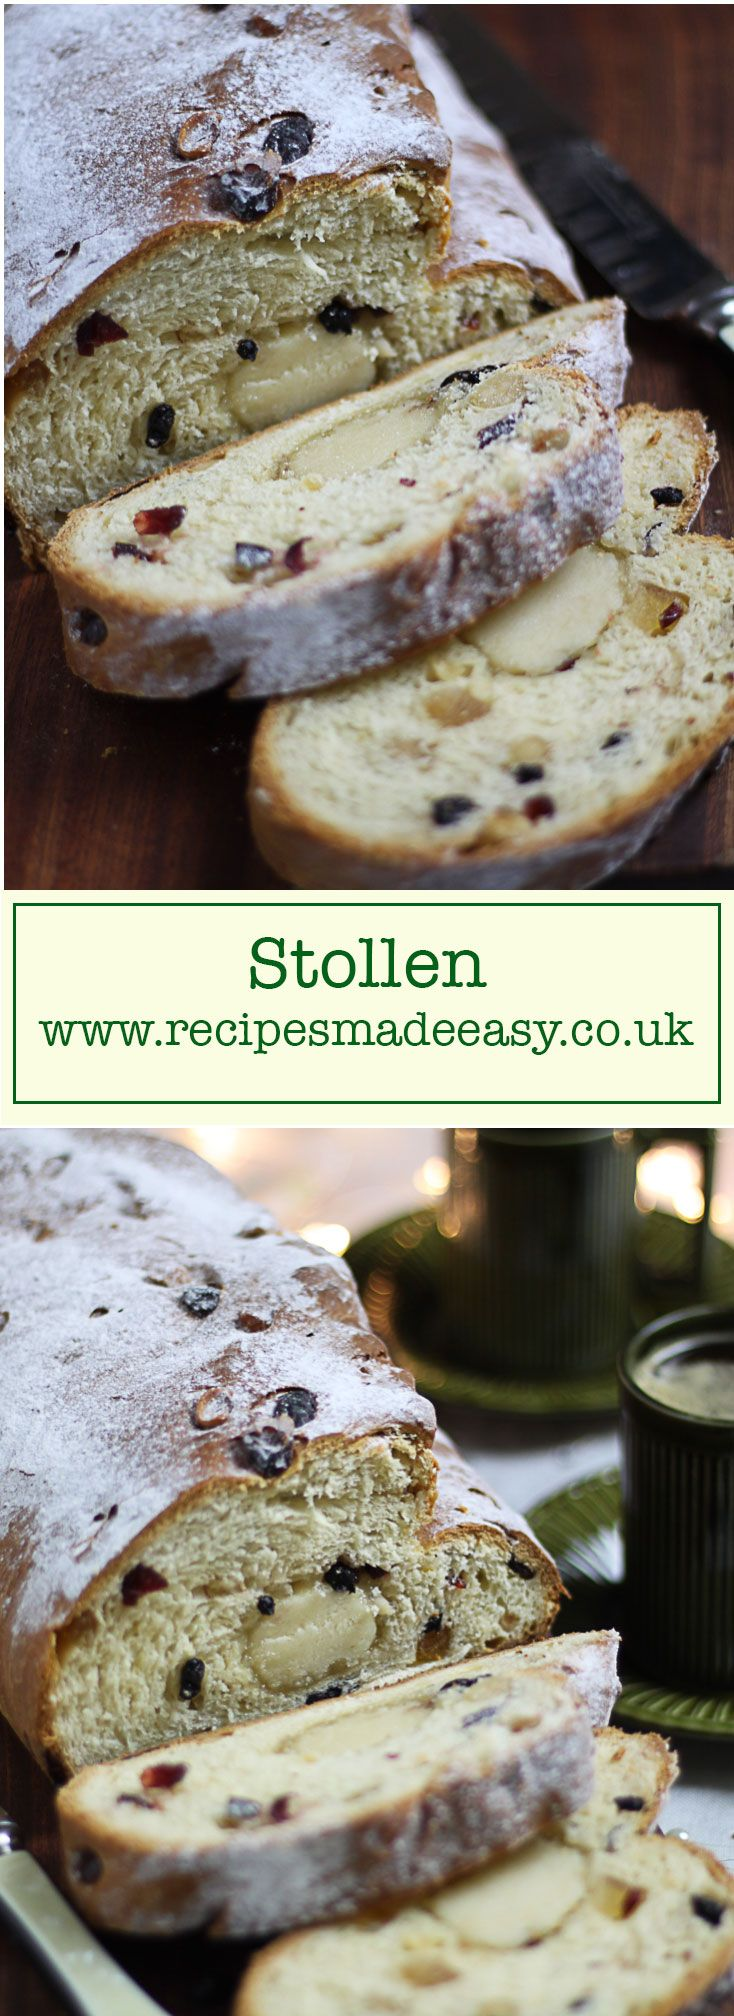 Recipe Made Easy - Stollen - A traditional yeasted cake served at Christmas time